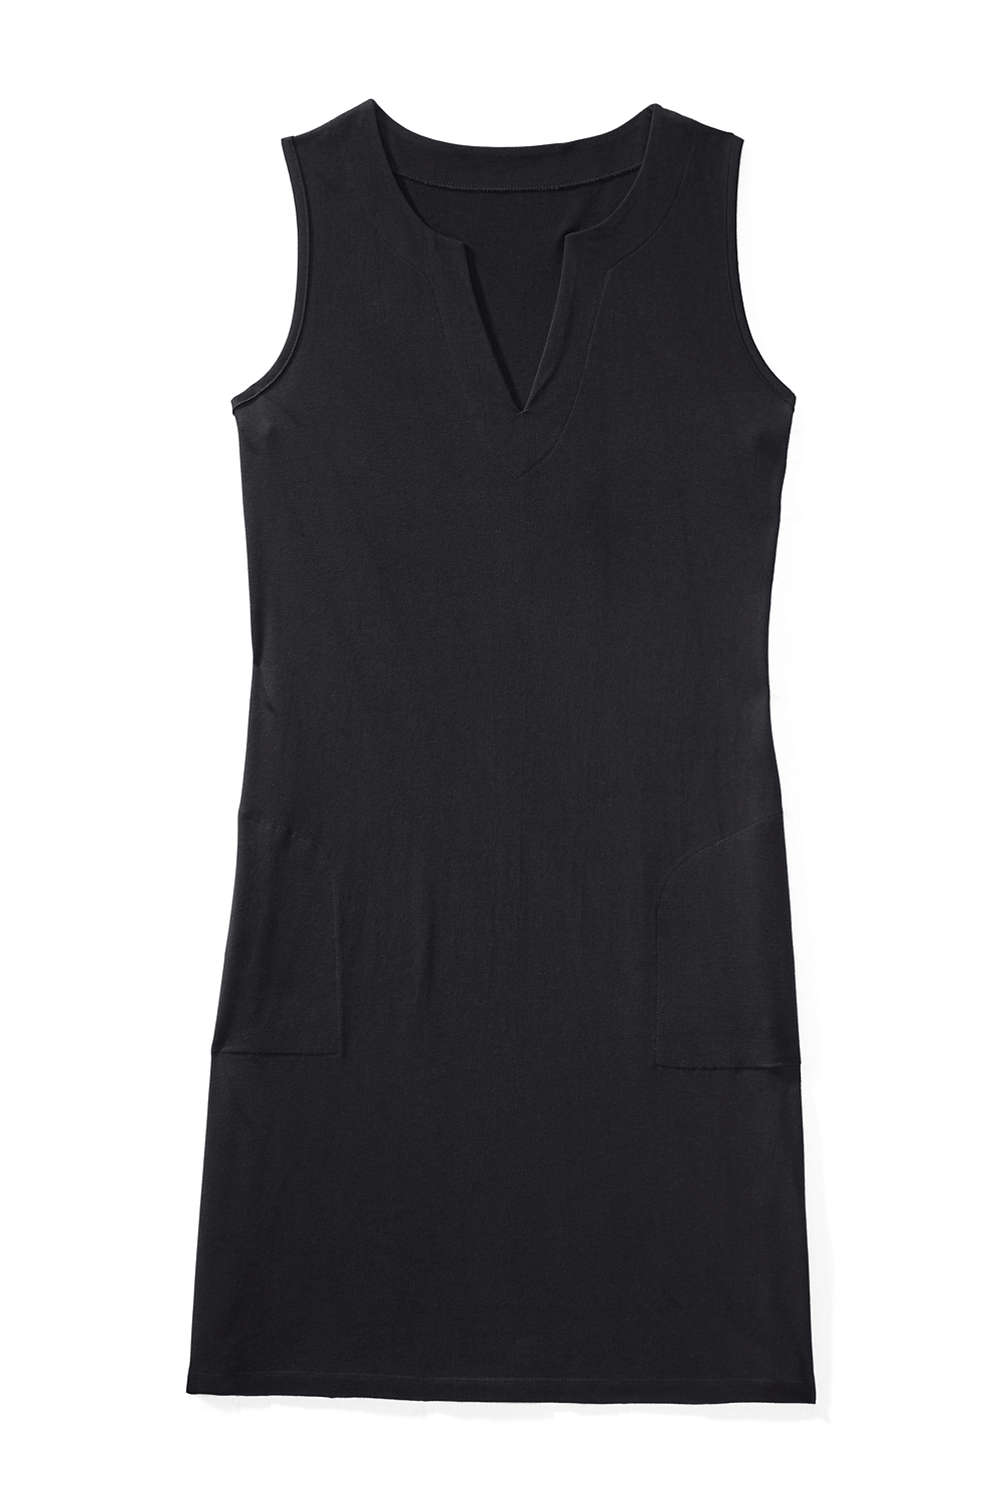 2c2ee27cb91a2 Women s Cotton Jersey Sleeveless Tunic Dress Swim Cover-up from ...